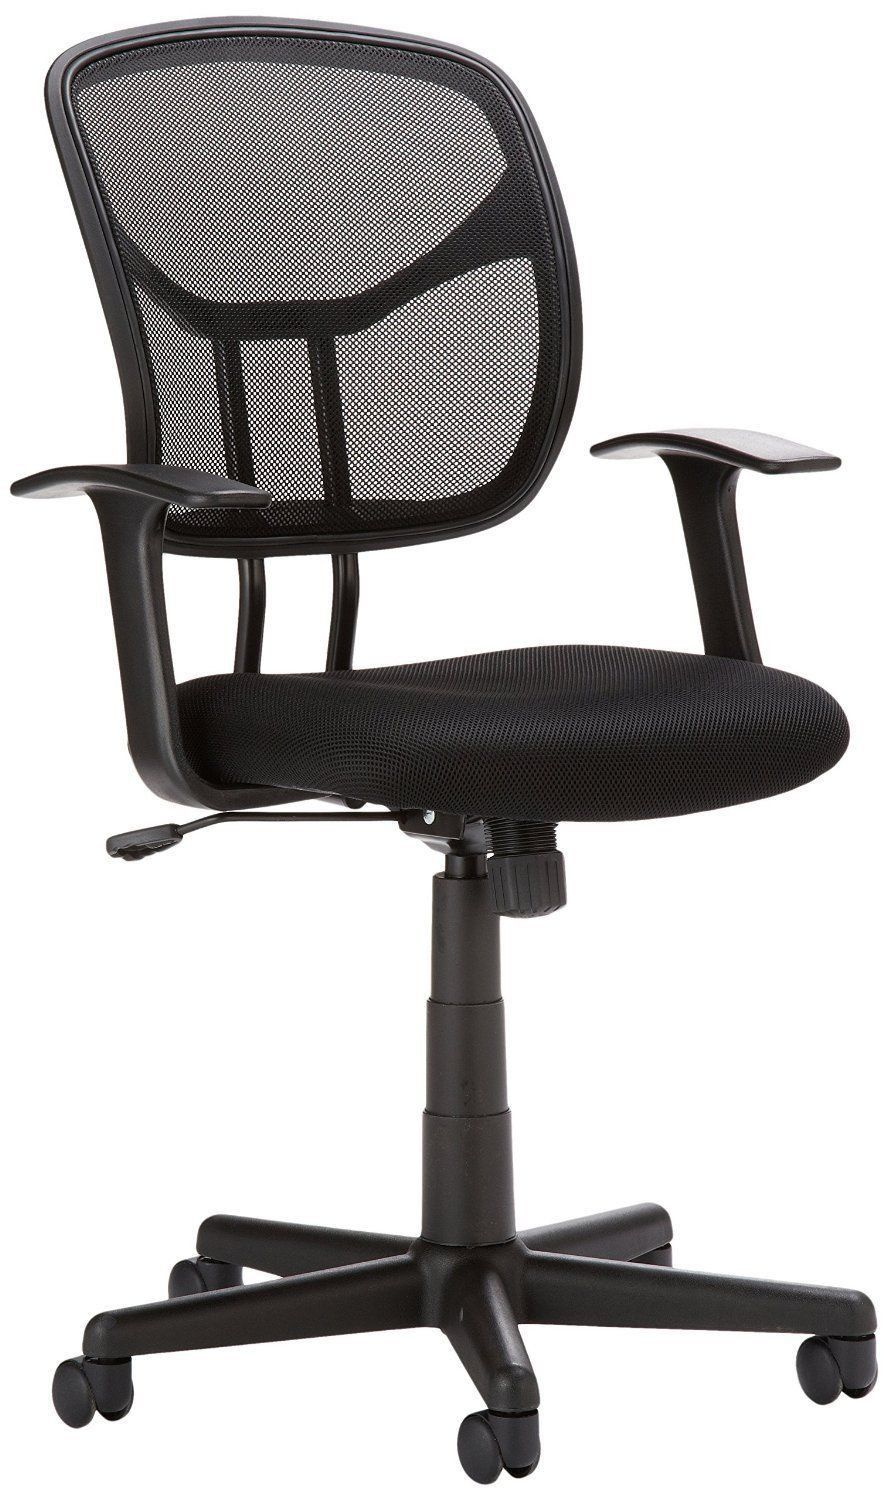 Best Office Chair 2021 Pin on Small Contemporary Home Designs